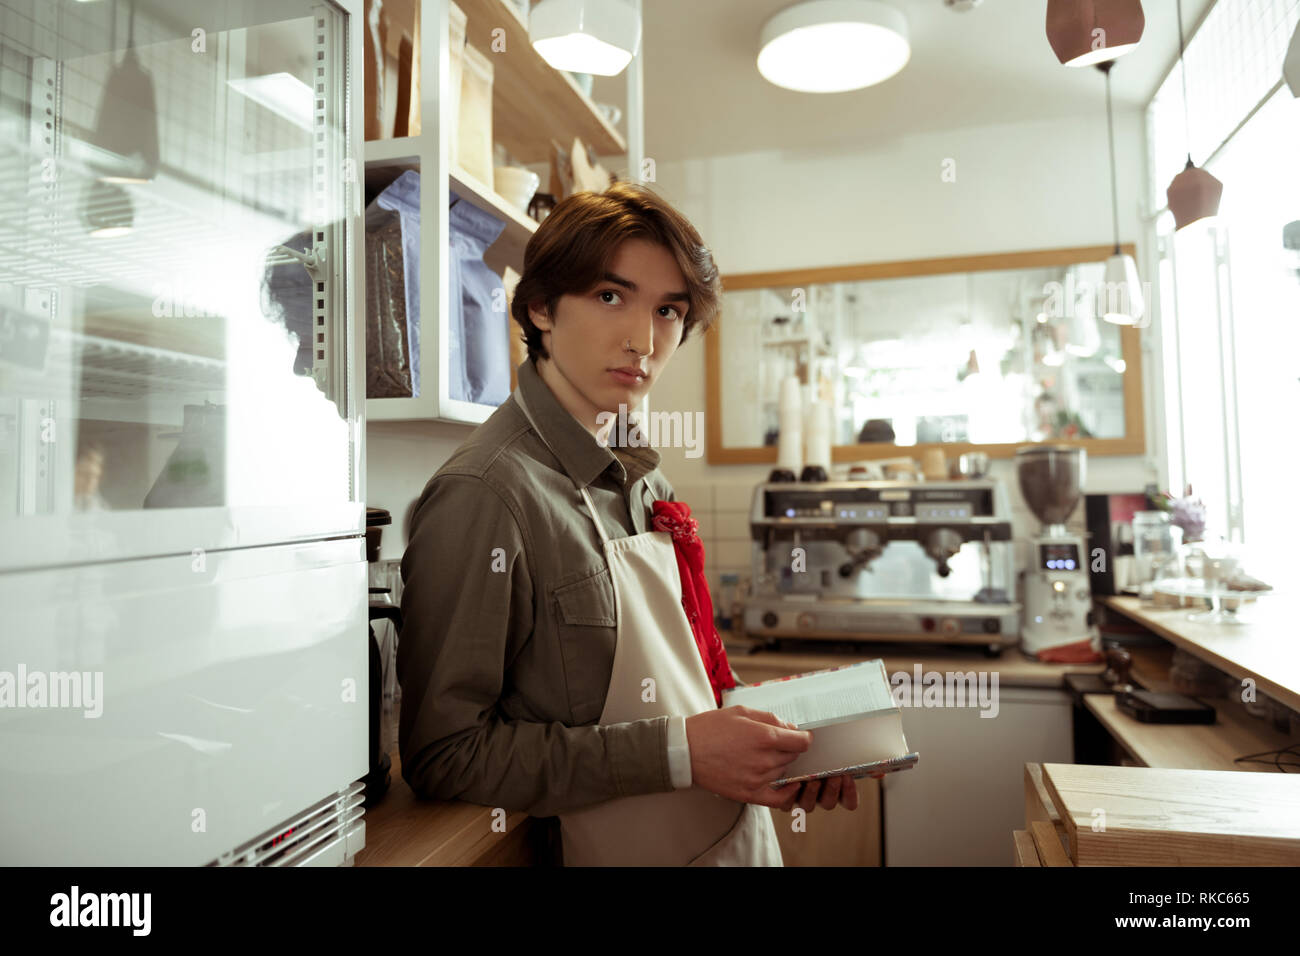 Dark-haired young barista with nose piercing flipping through book - Stock Image